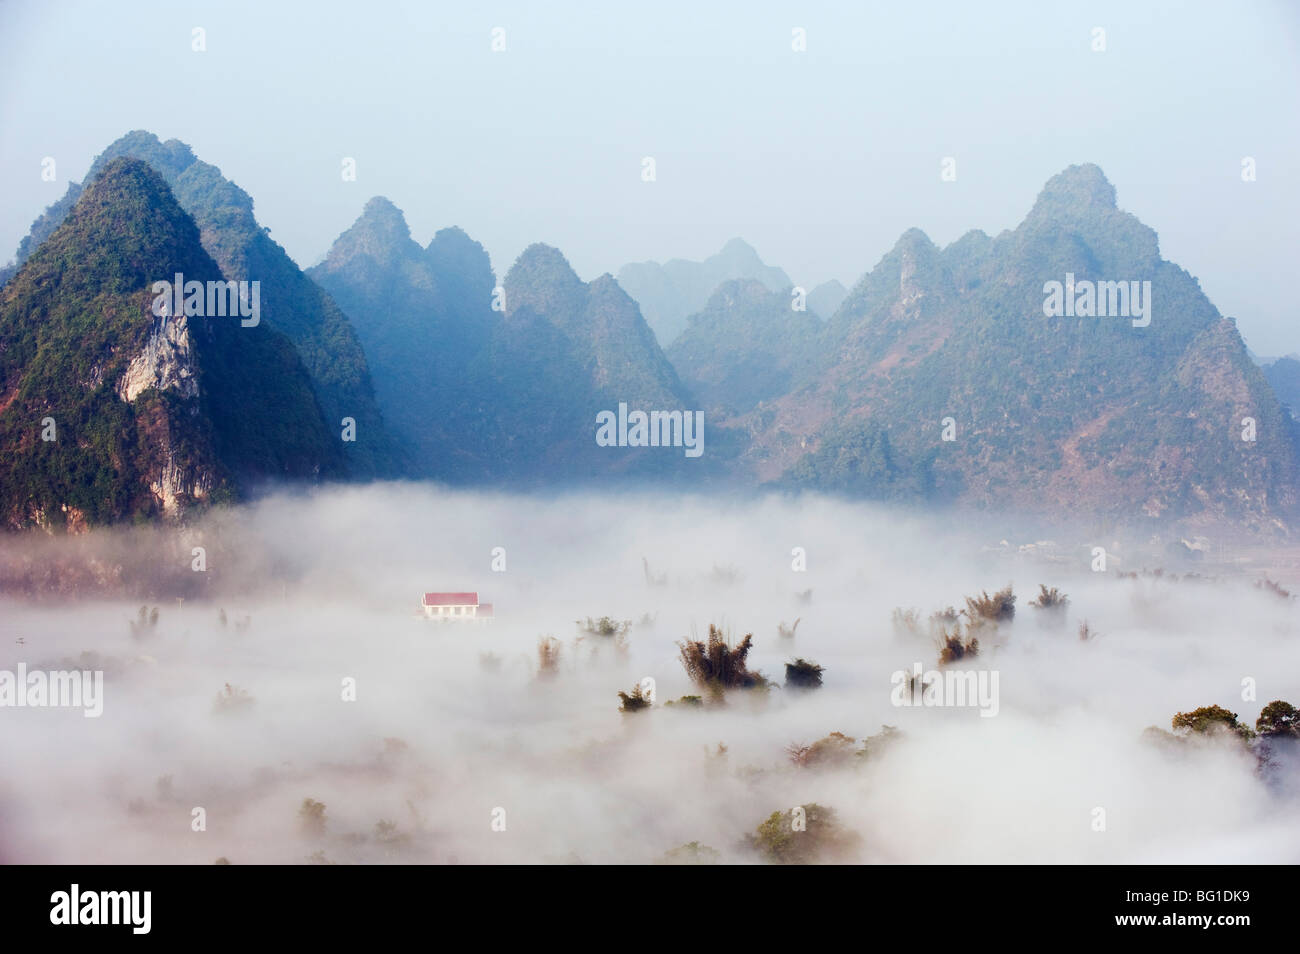 Morning mist covering the valley at Detian Falls, Guangxi Province, China, Asia Stock Photo